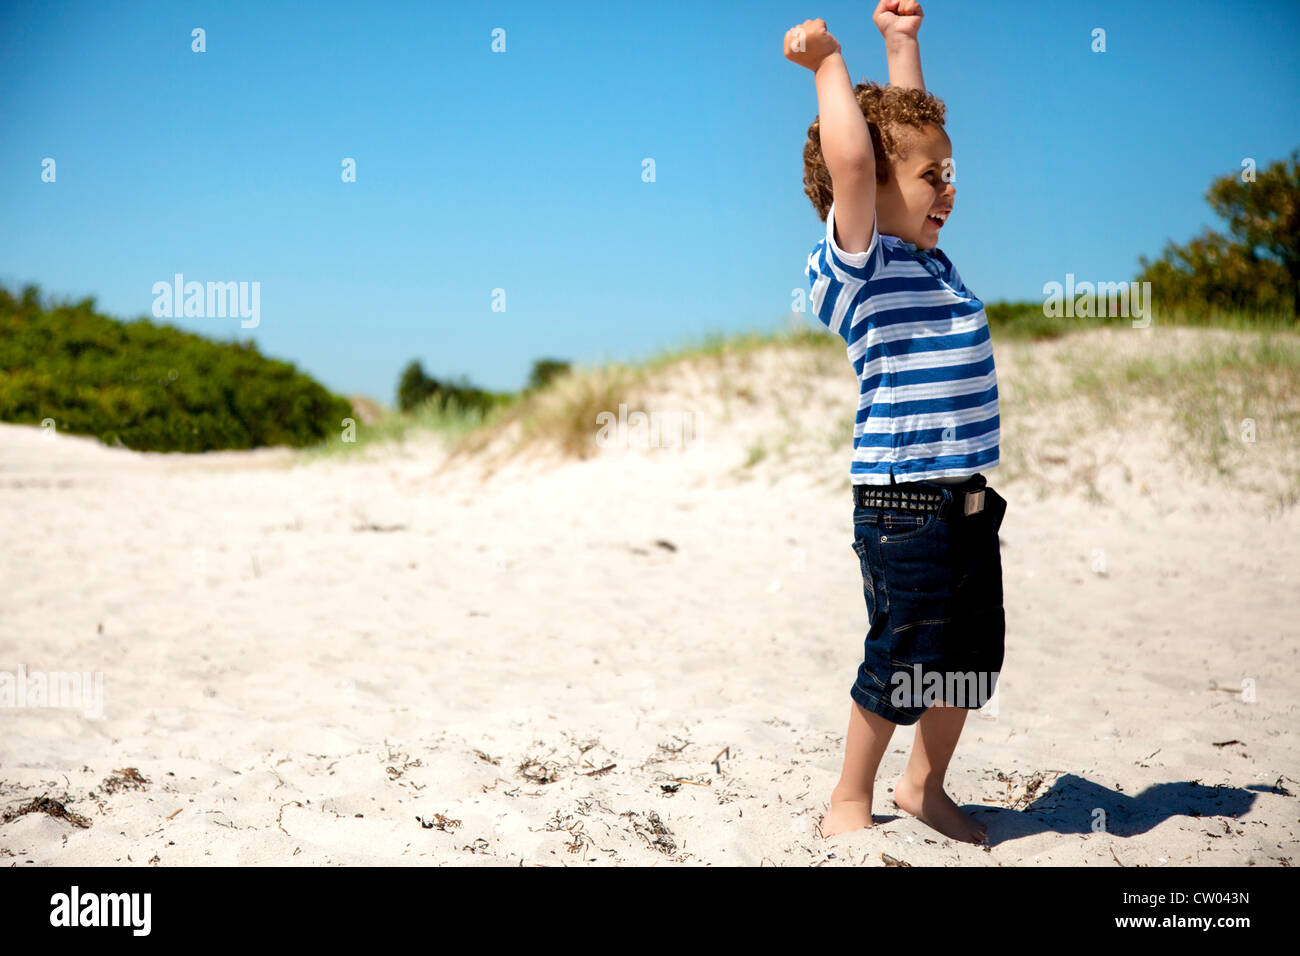 Young boy with arms stretched looks happy as he plays on the sand - Stock Image